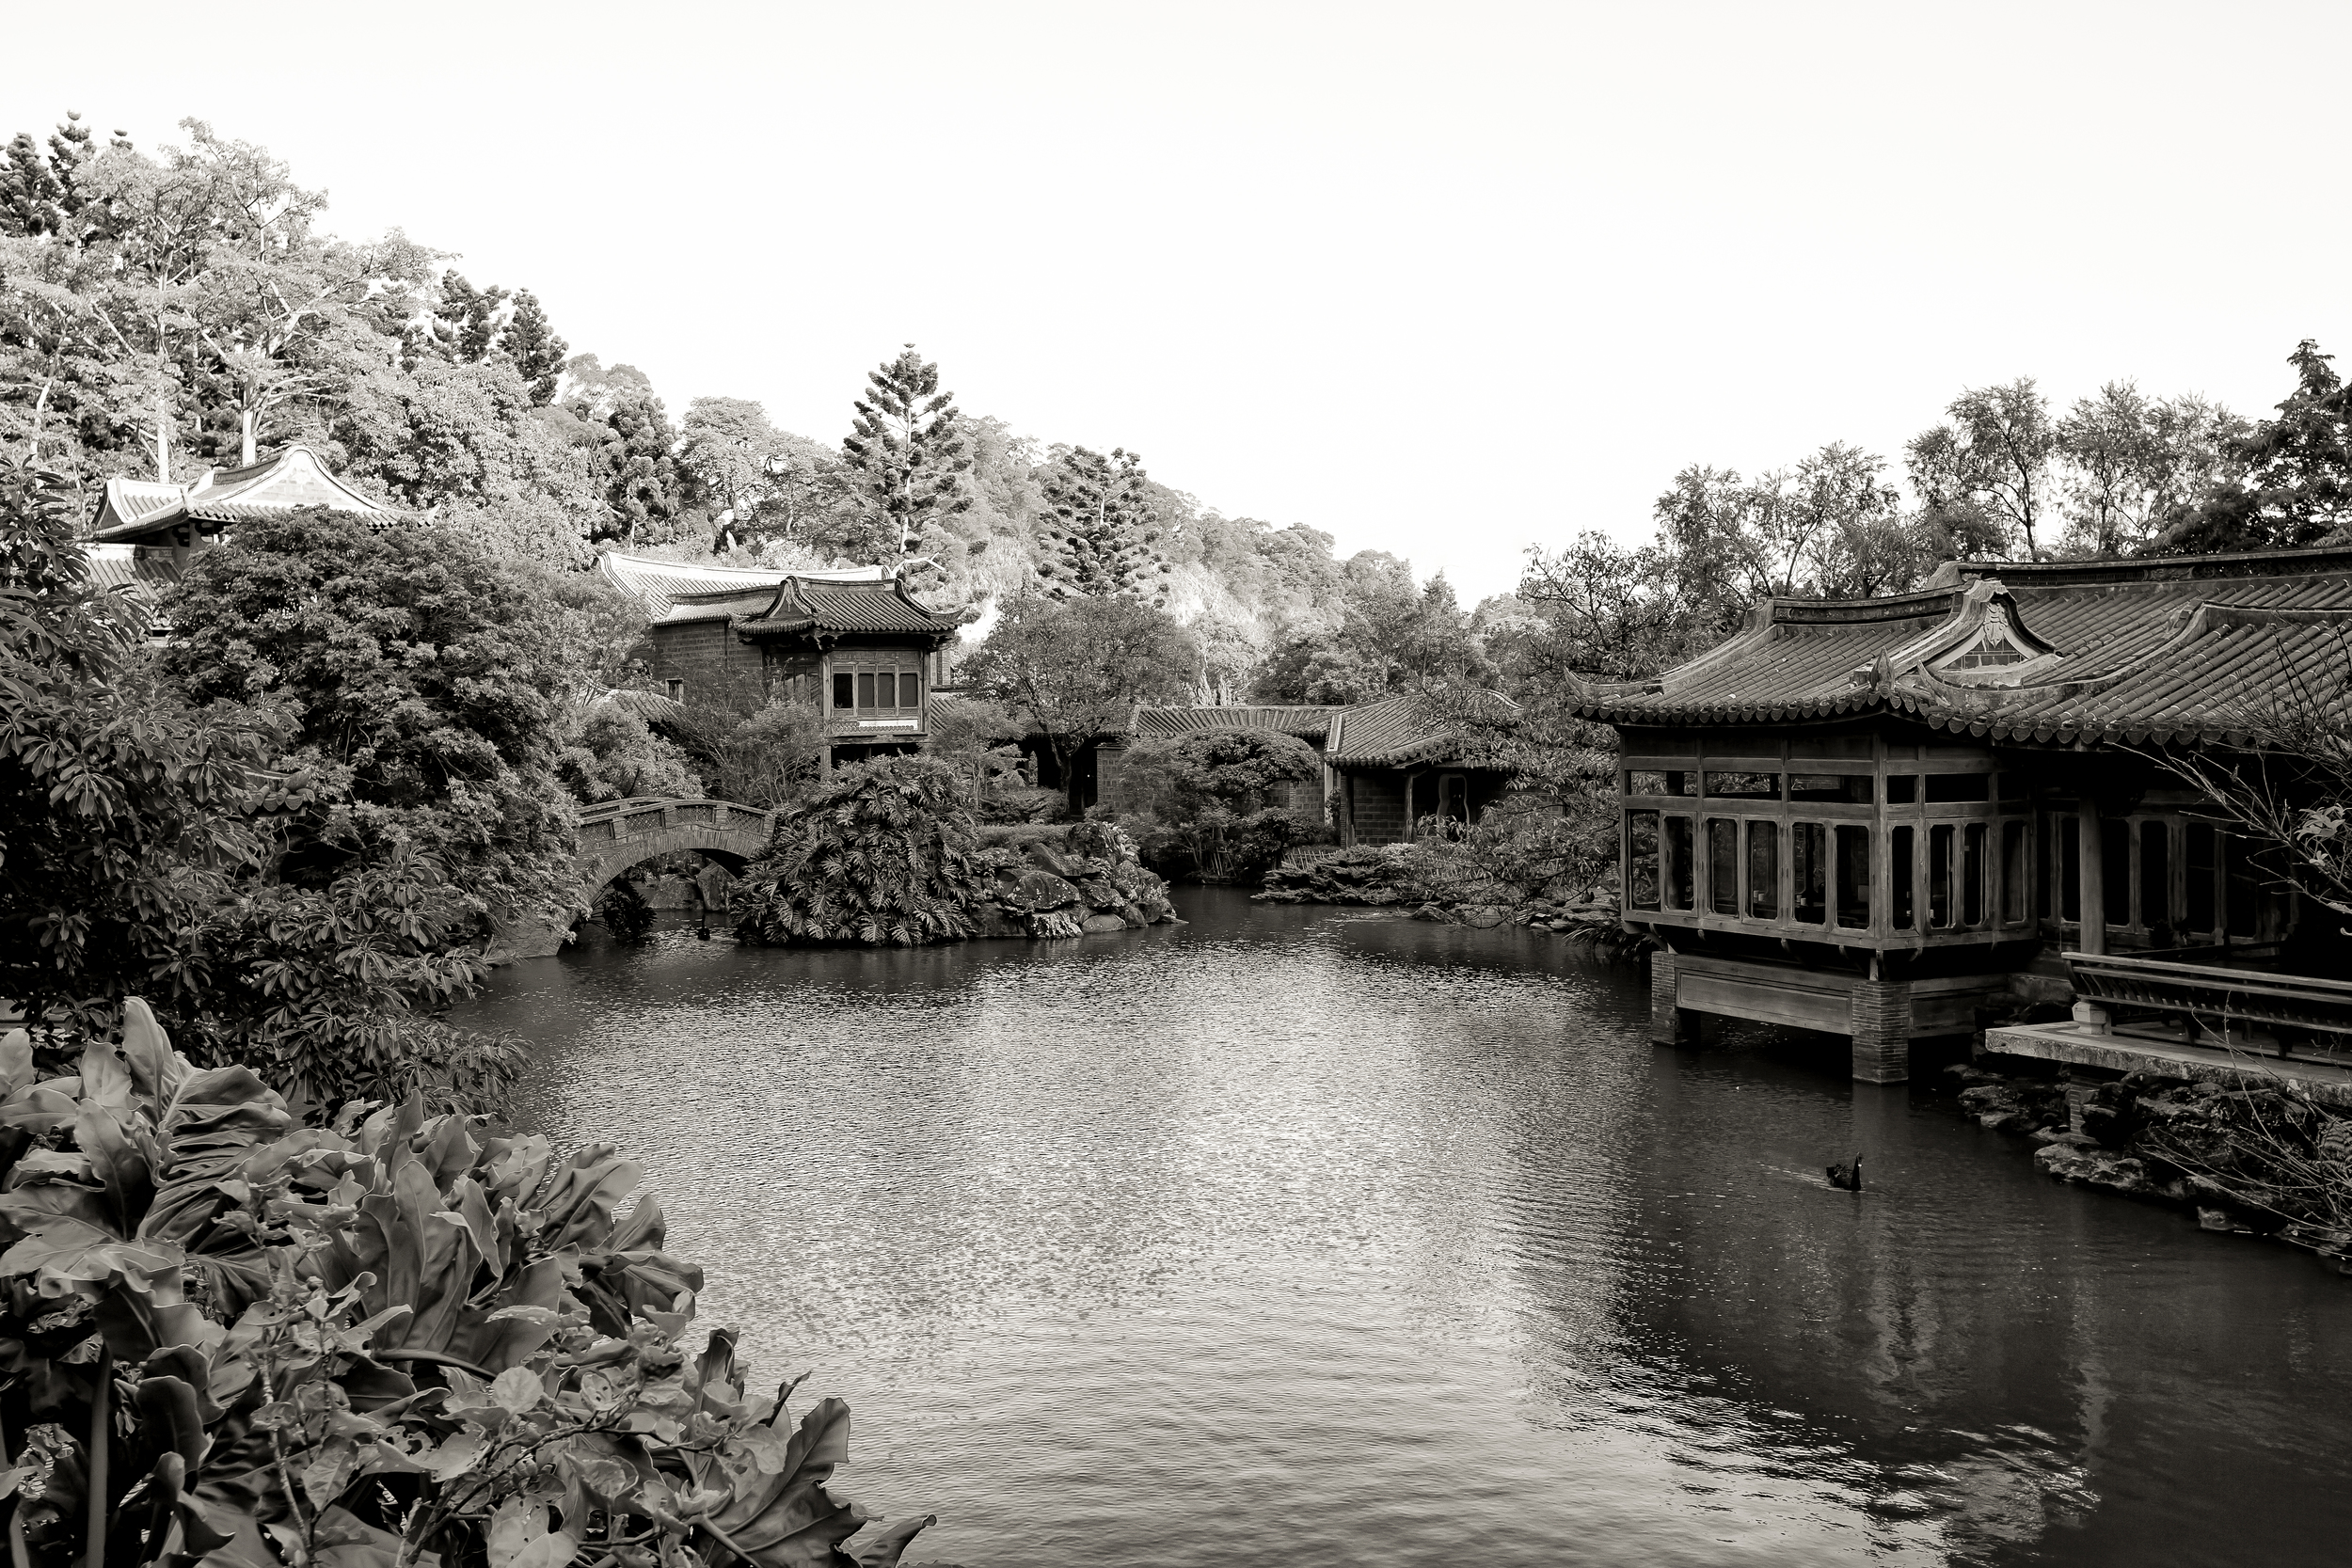 A Chinese Garden in the mountains of Hsinchu county (新竹縣山上的花園)